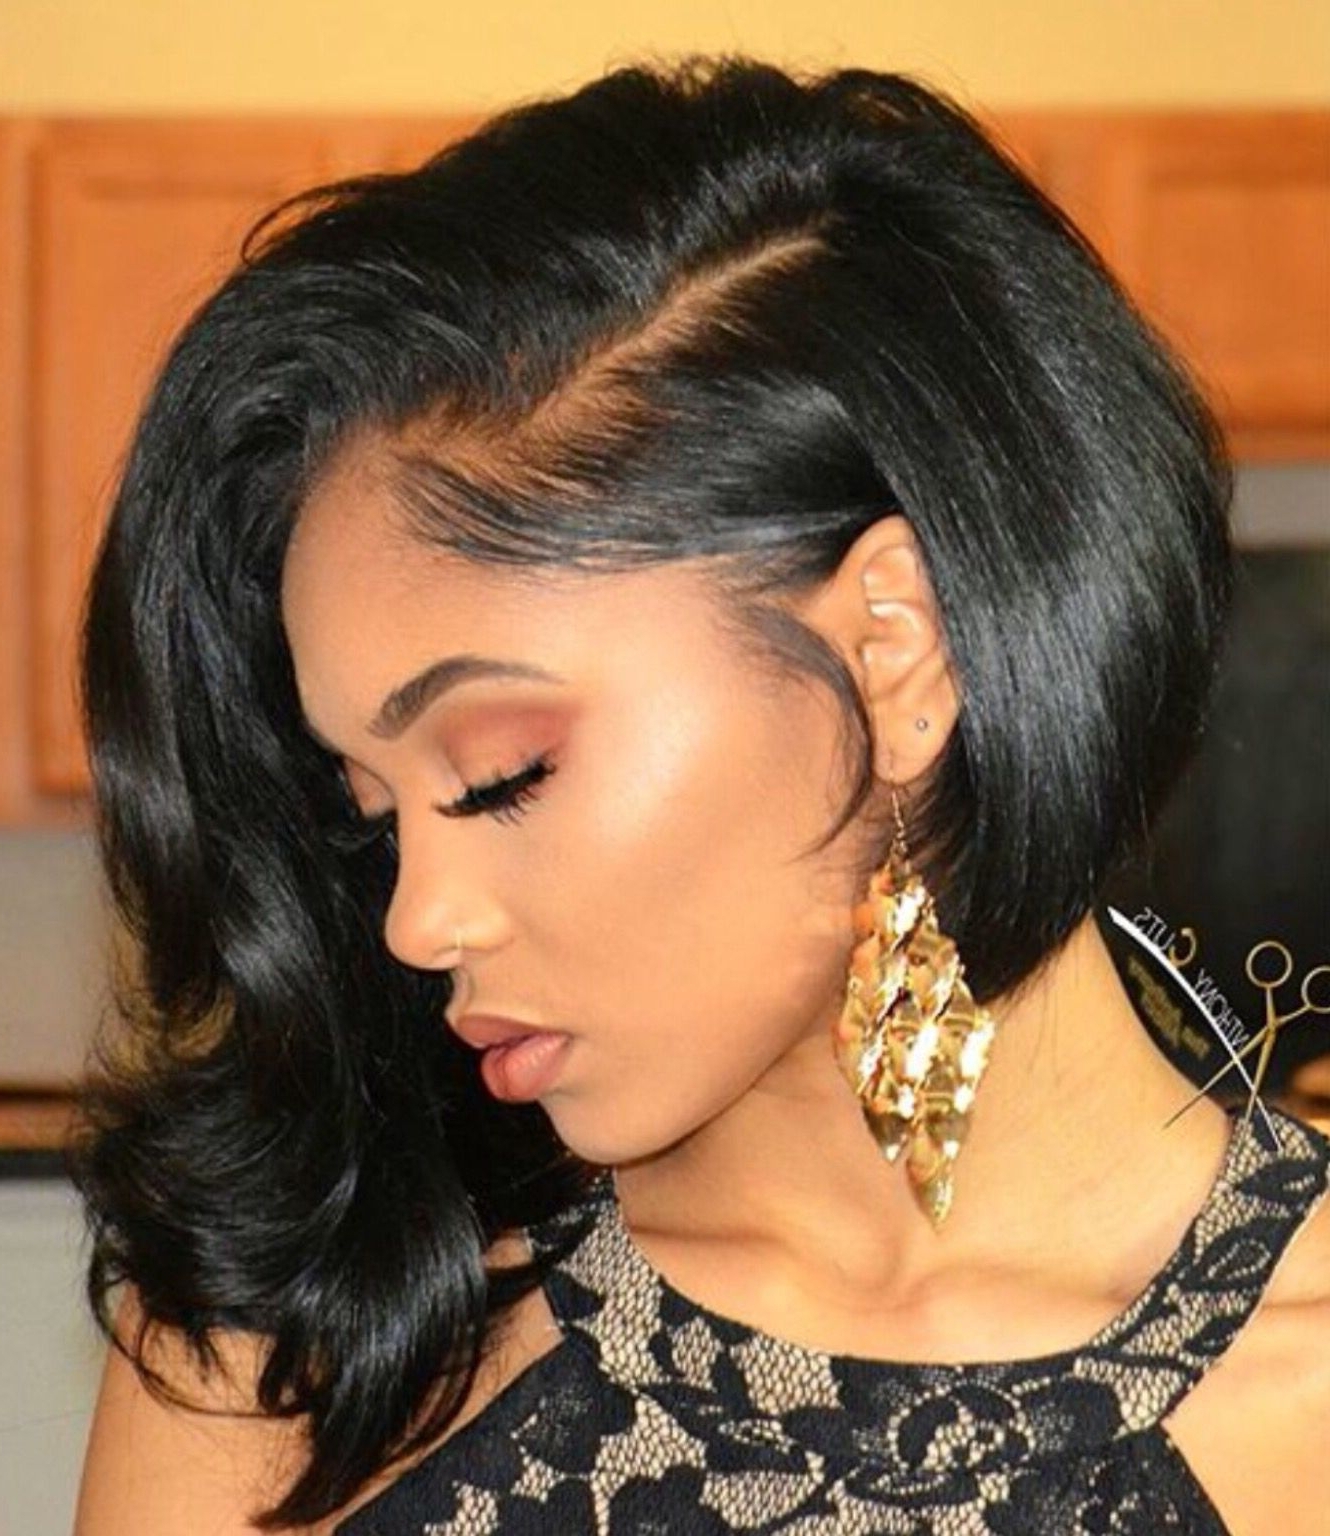 Prepossessing Cute Short Curly Bob Hairstyles With 15 Curly Weave Within Cute Curly Bob Hairstyles (View 4 of 20)